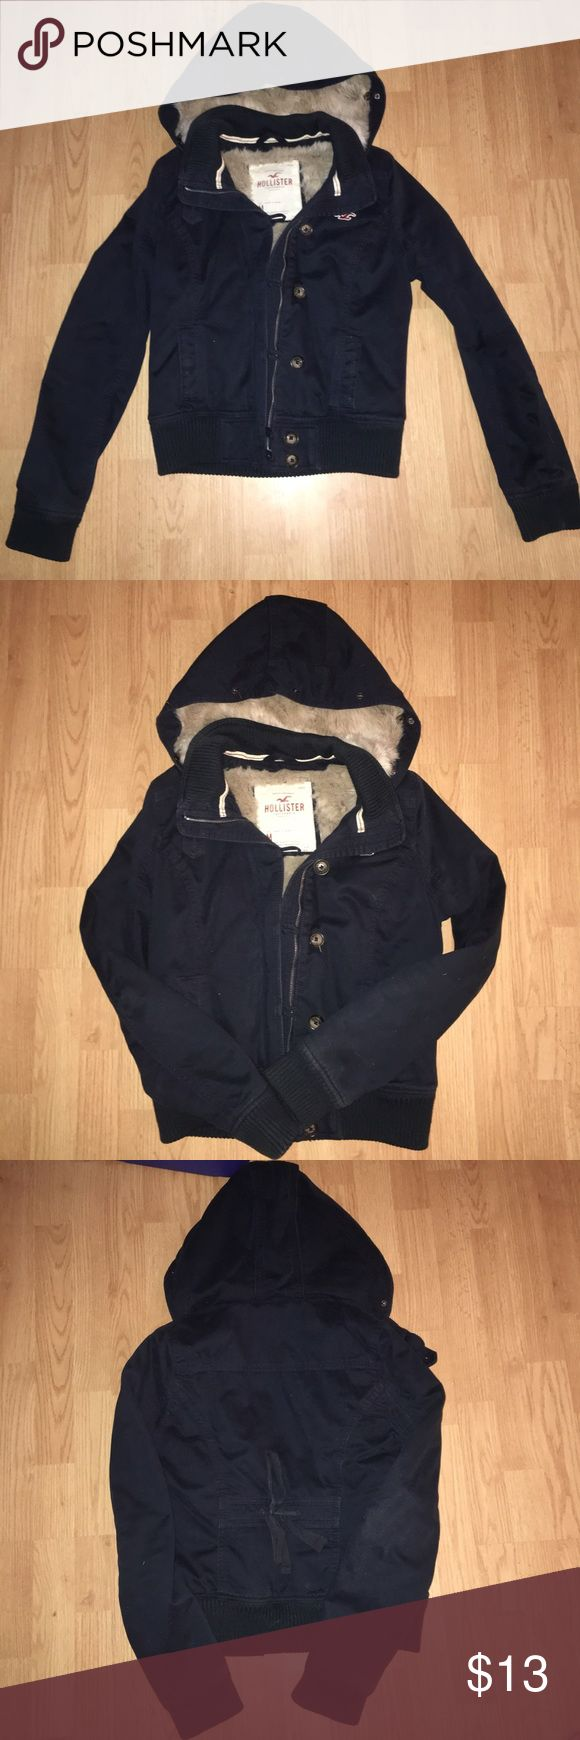 Hollister coat This is a really nice quality coat from Hollister but the zipper is broken. It does have buttons though and is warm. Hollister Jackets & Coats